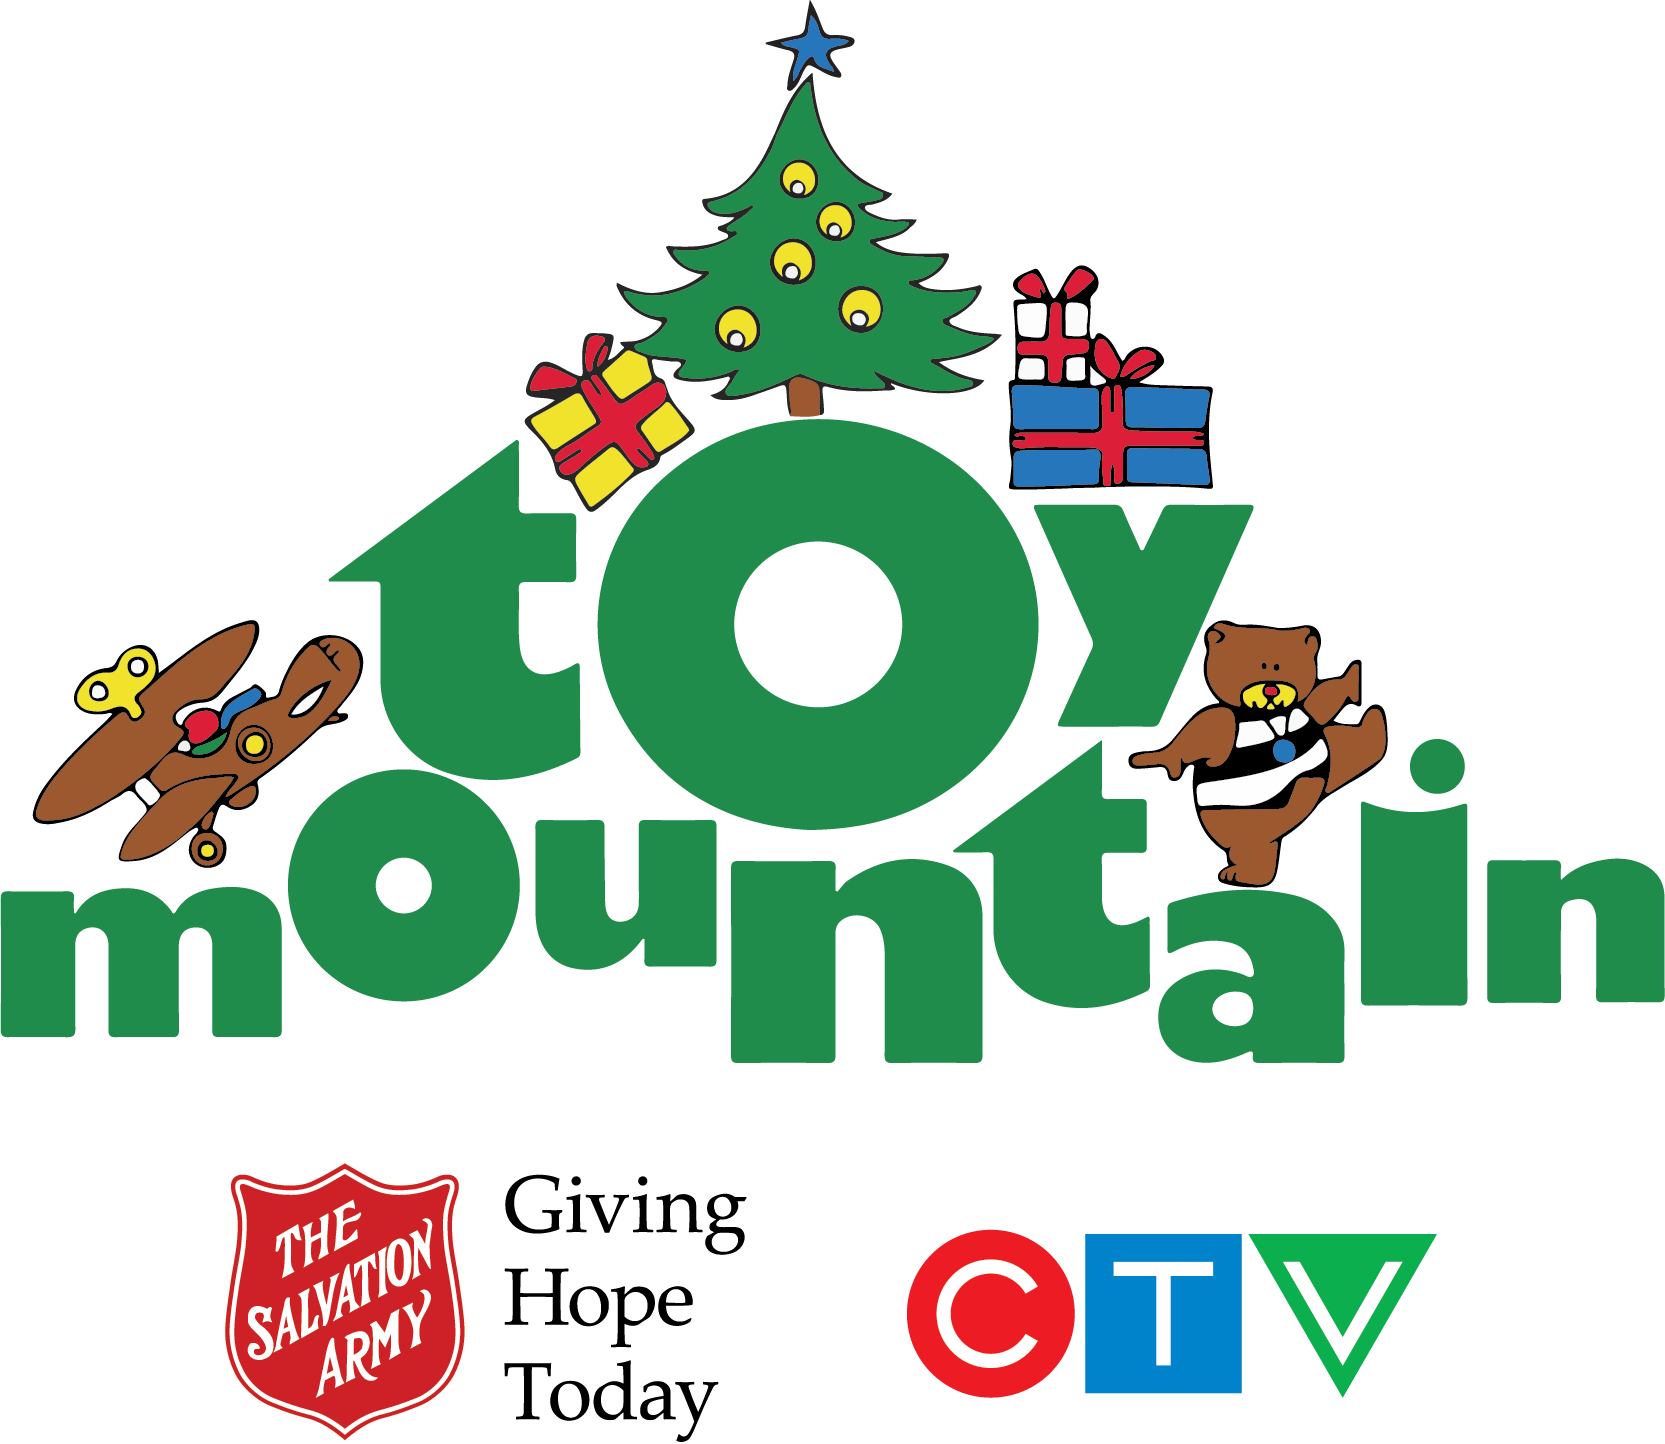 Toys vector different kind. Toy mountain ontario central